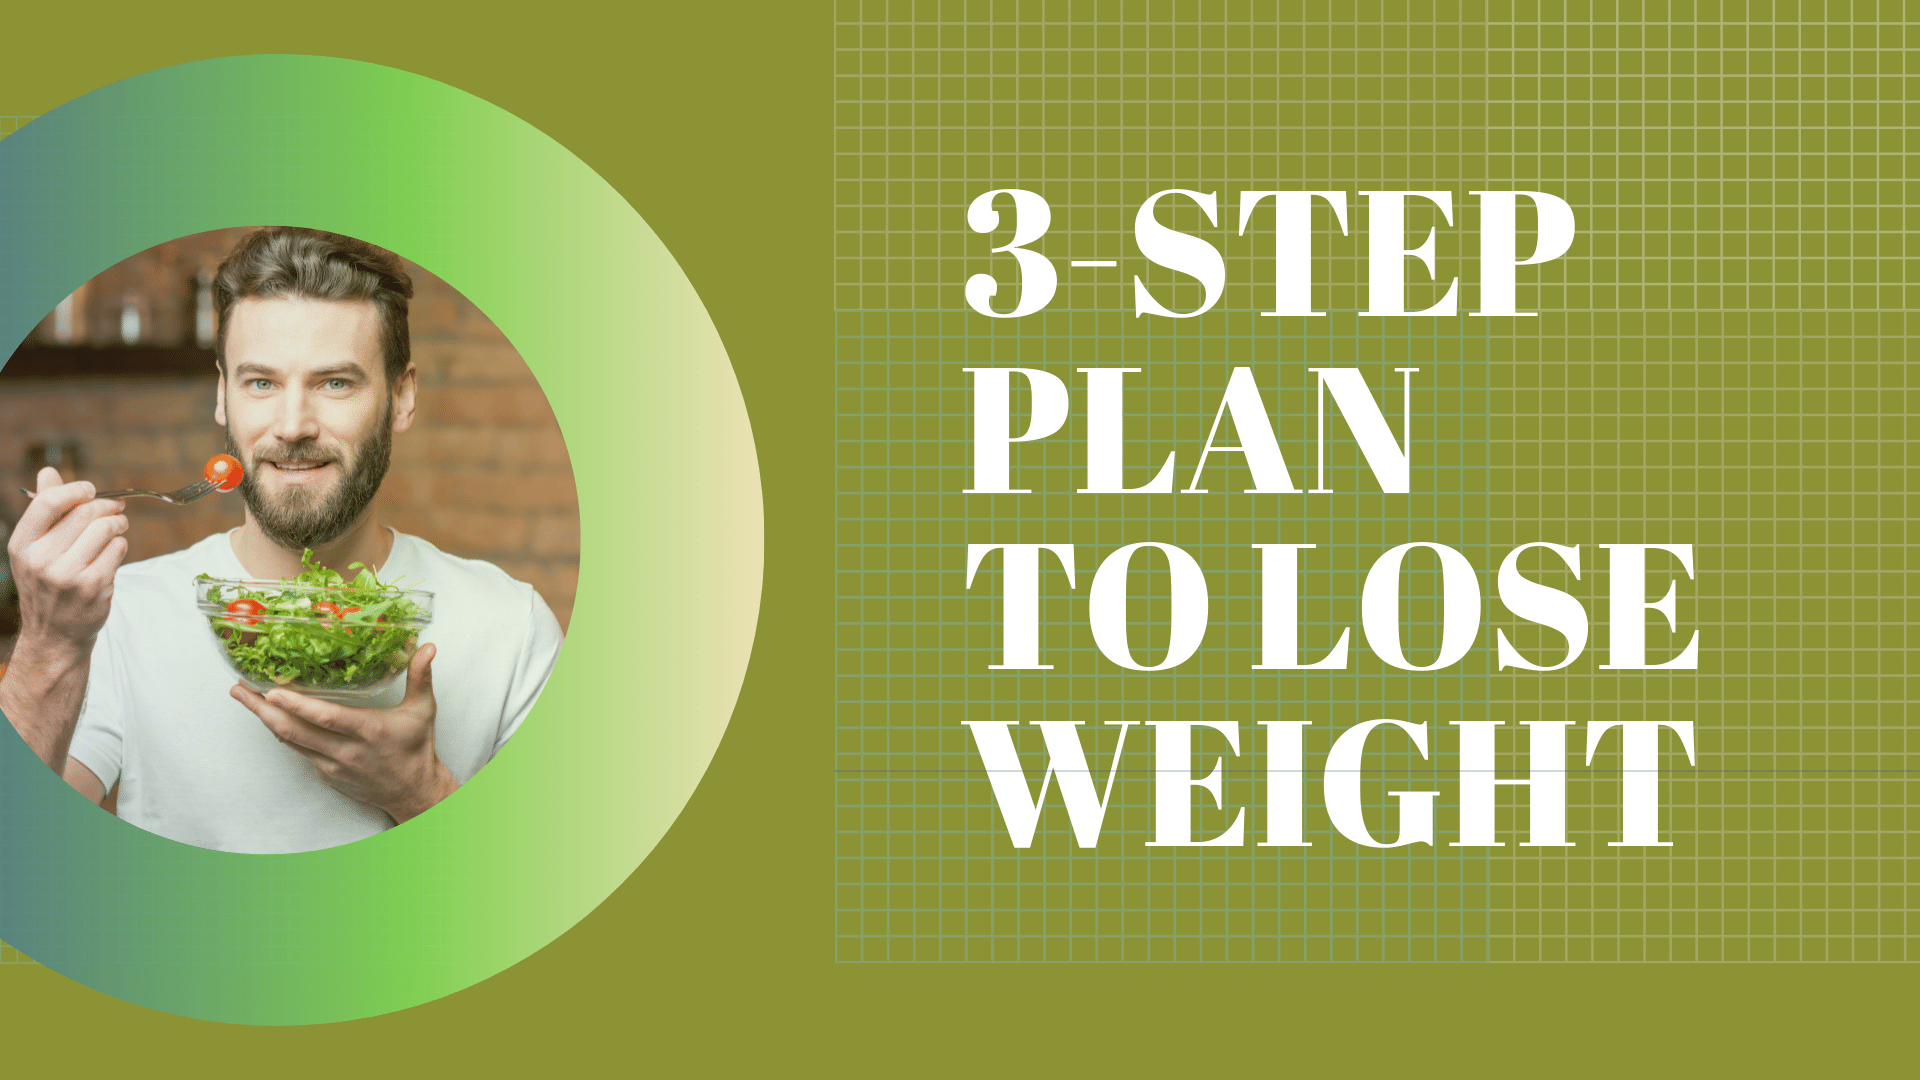 A Practical Three Step Plan to Lose Weight